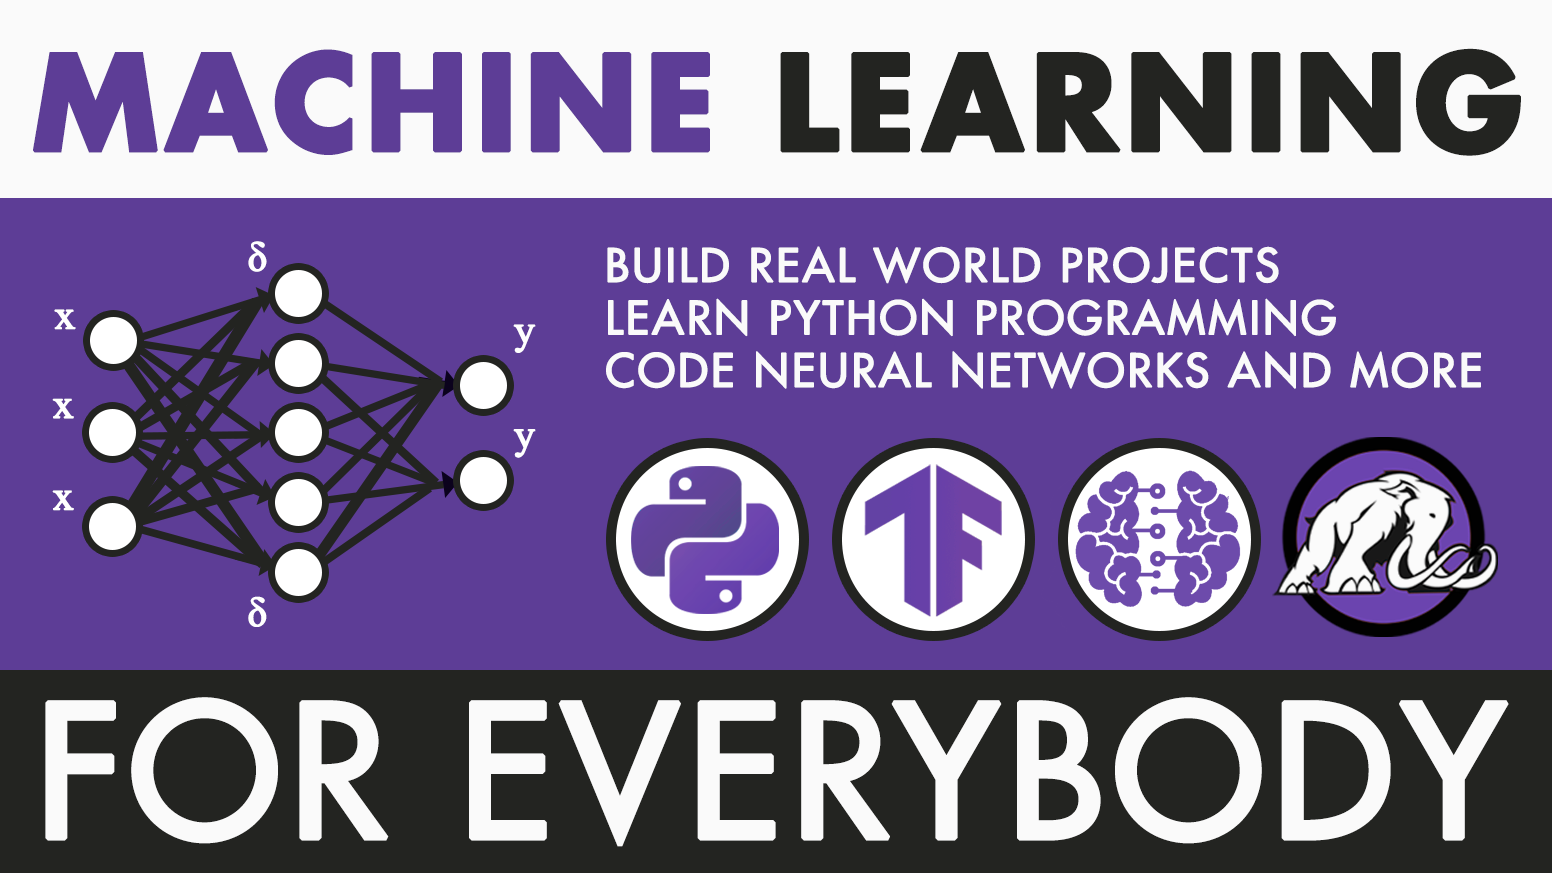 Finally, a course that makes machine learning so easy that everyone can understand it.